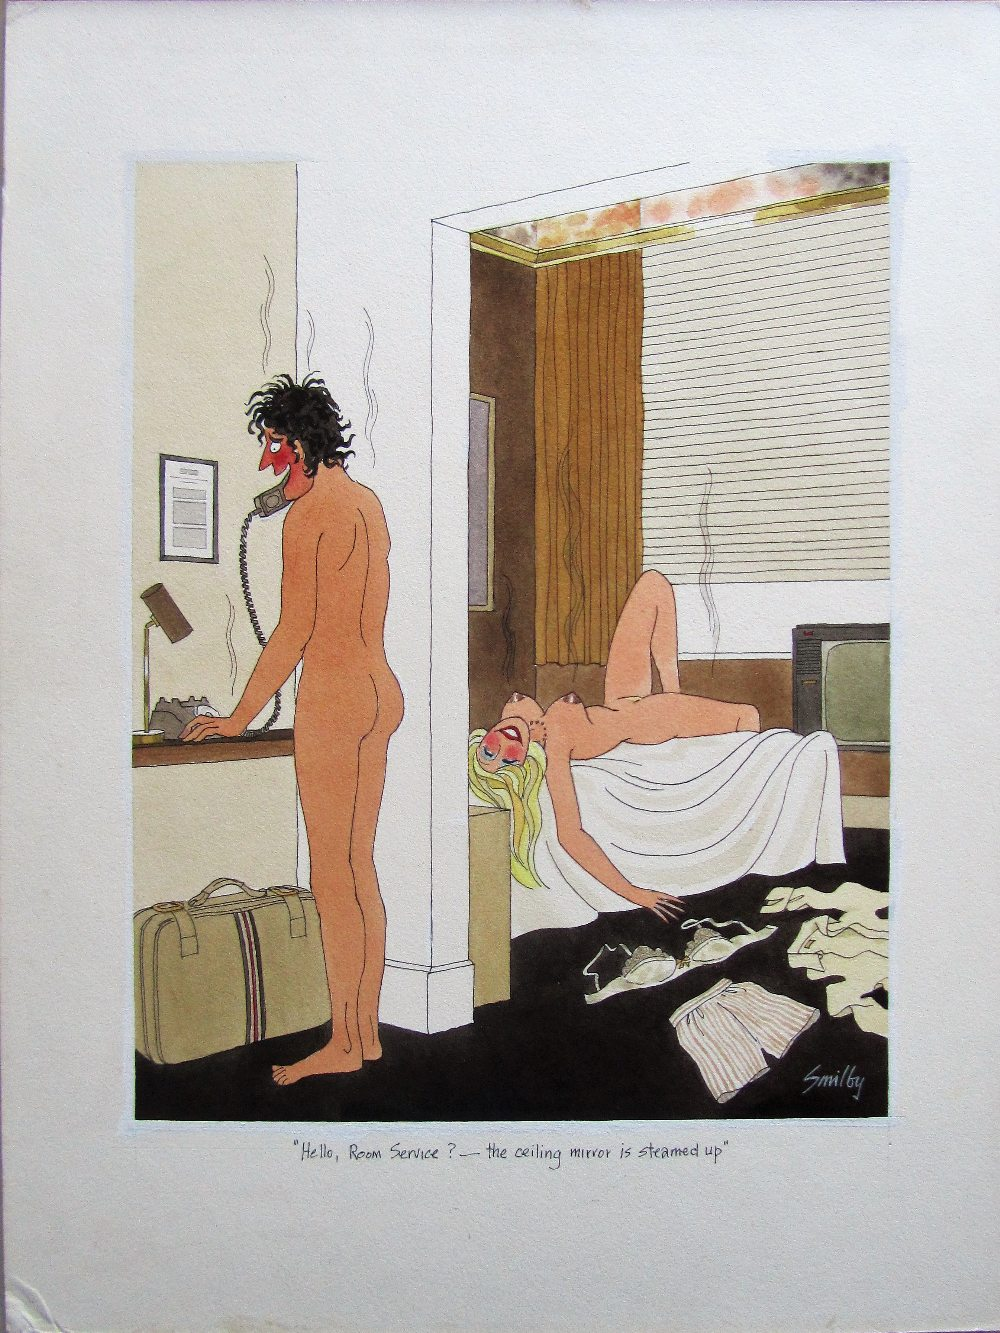 Lot 57 - Smilby, Francis Wilford-Smith 'Hello, Room Service? - the ceiling mirror is steamed up'